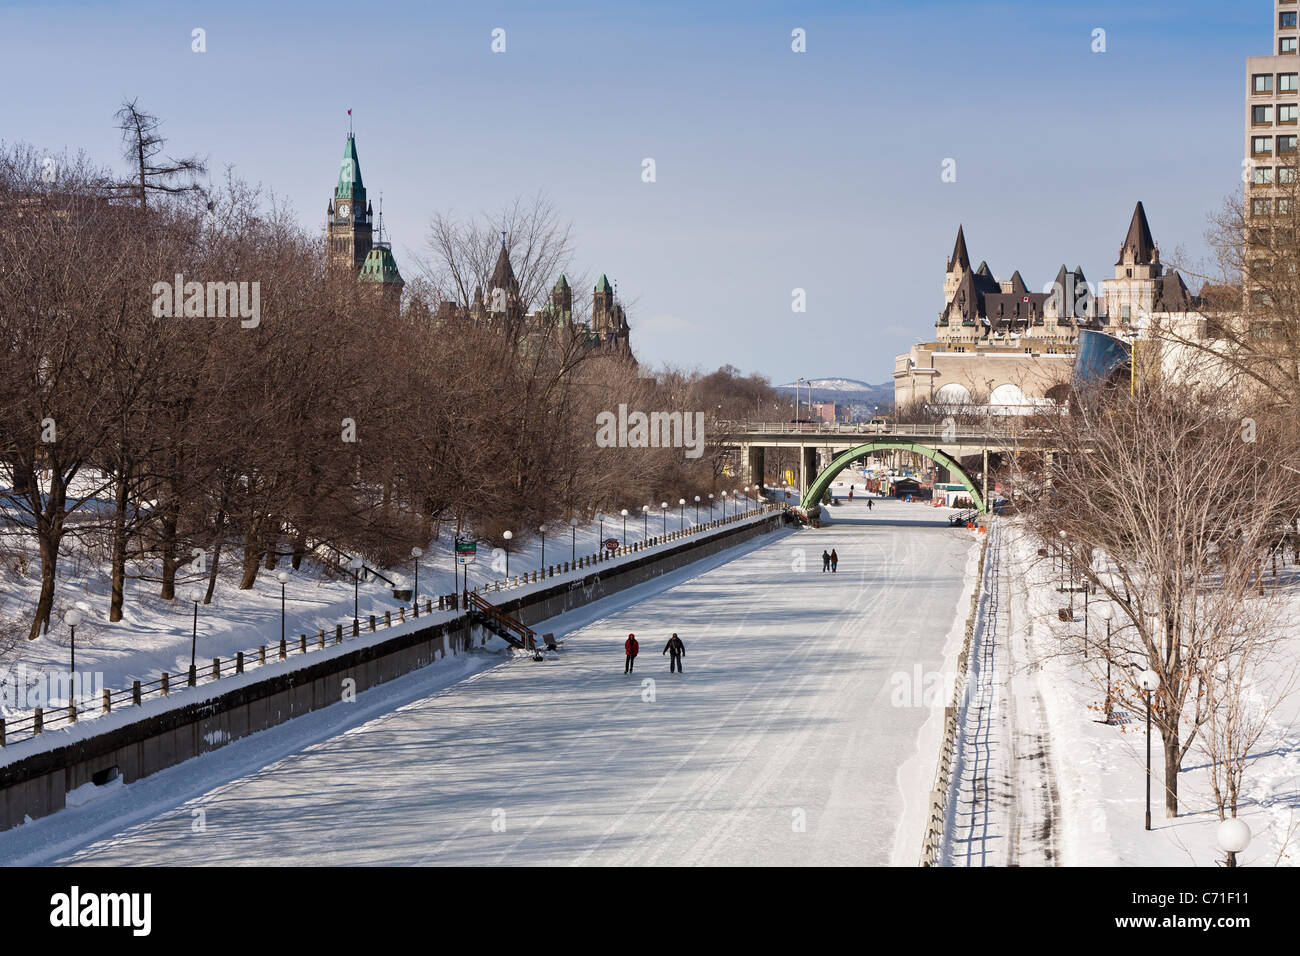 Rideau Canal Skateway on a cold day. A quiet cold day on the Rideau Skateway. Only a few skaters and walkers are - Stock Image